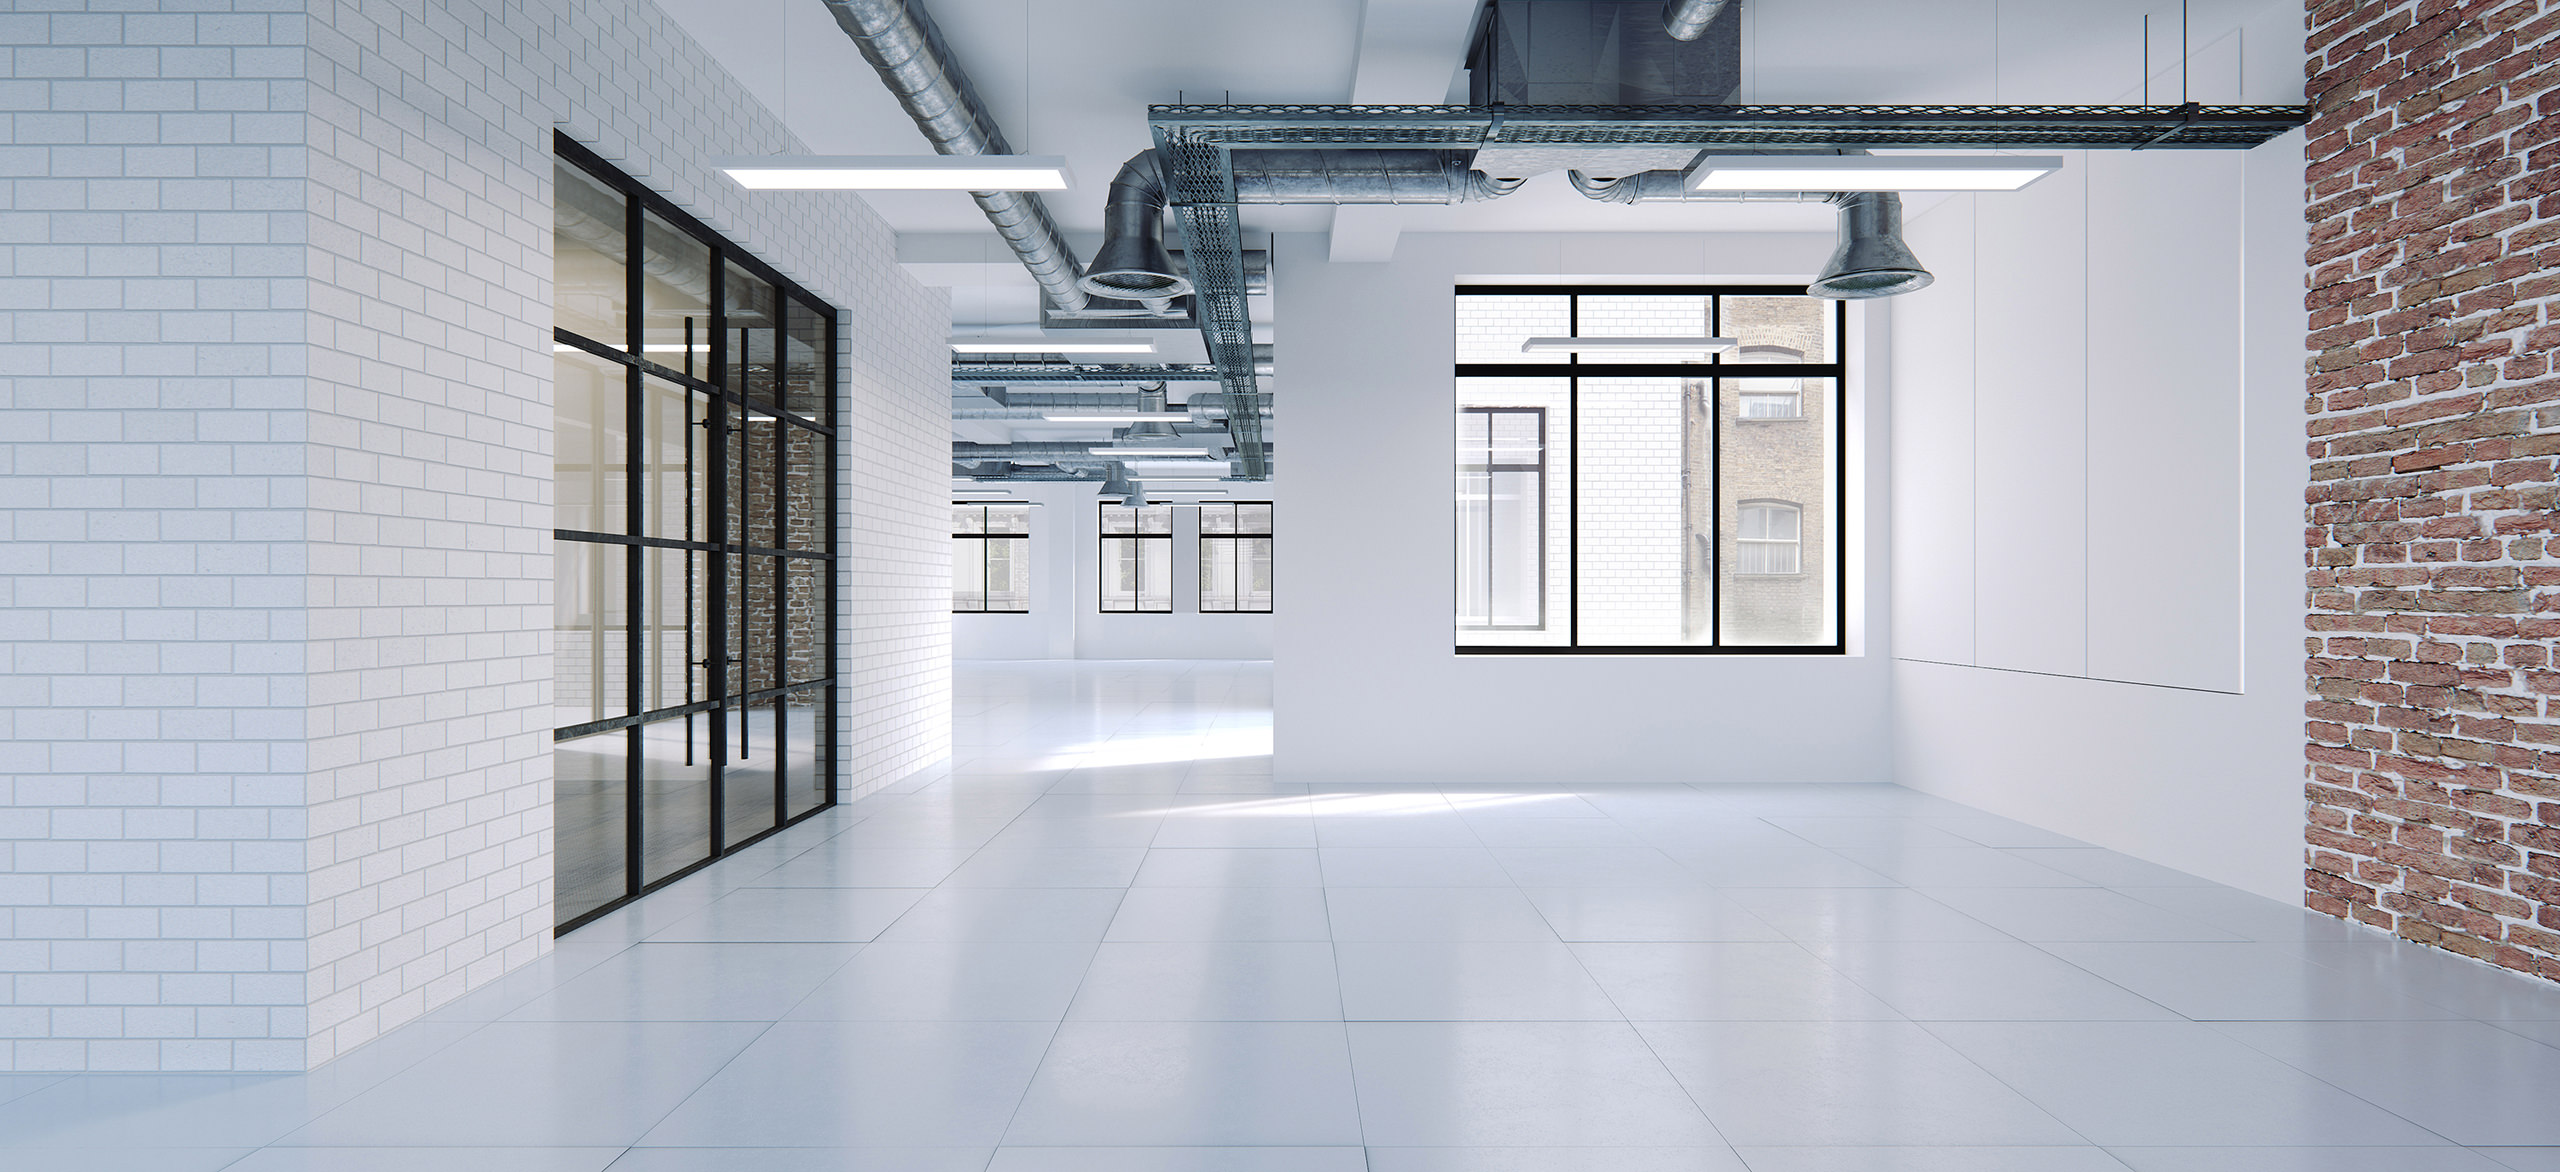 3d interior visualization of an empty spacious room with white walls and a grey metal vent system across the entire ceiling.